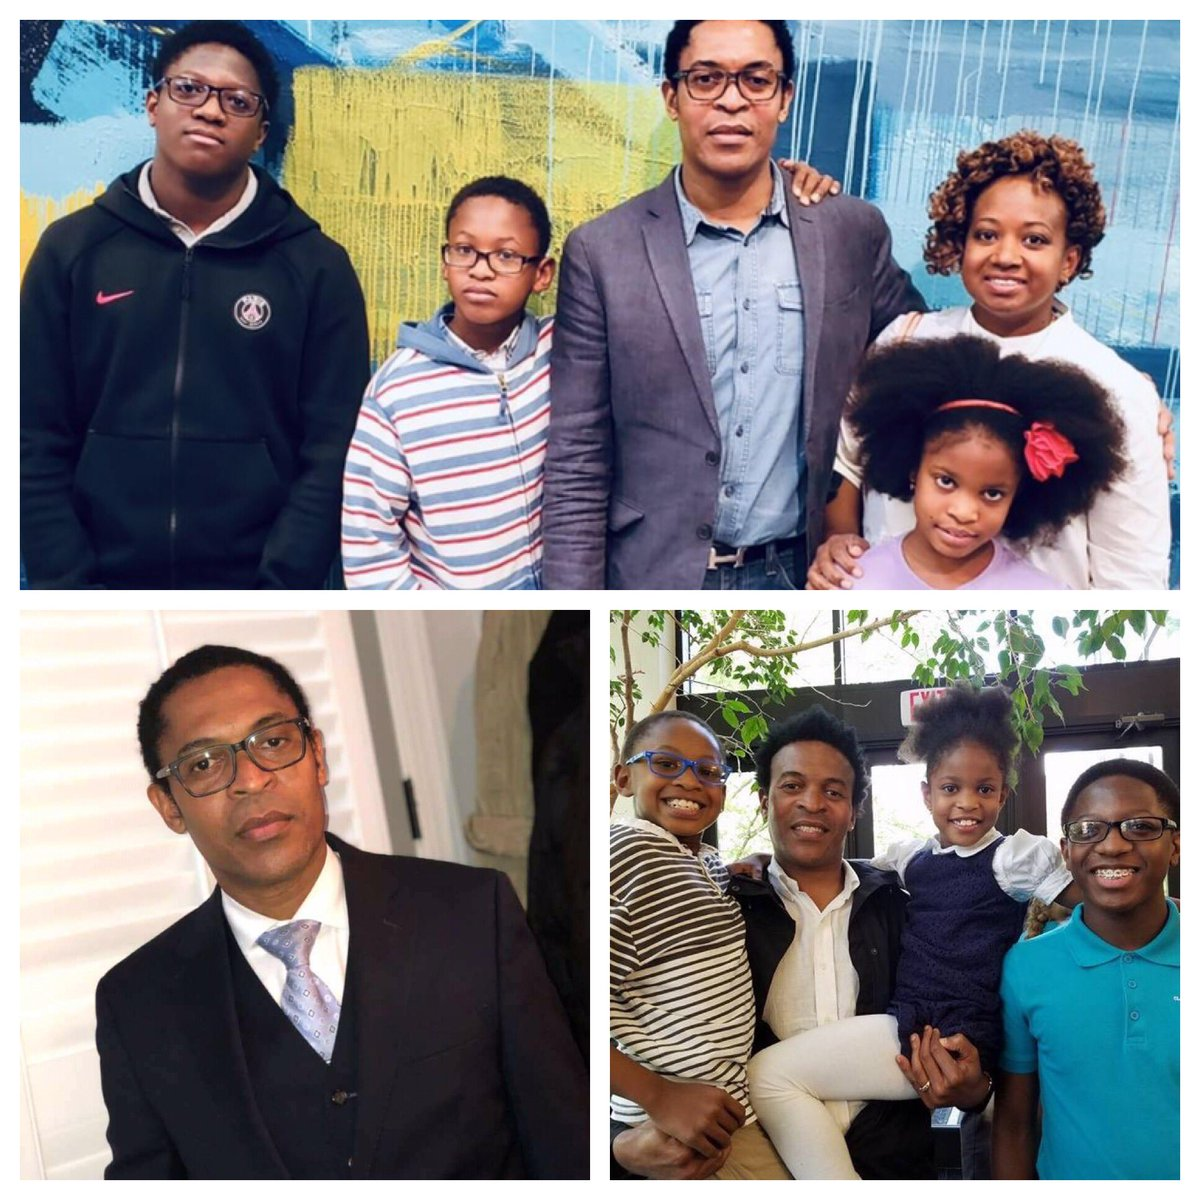 The RaiderNation family mourns the loss of one of our aMAYSing French teachers, Mr. Amevo.  A remembrance vigil will be held Wednesday, August 21st, at 6pm, in the auditorium.  Please keep his family in your thoughts and prayers. @apsupdate<br>http://pic.twitter.com/FxutXHlwuX